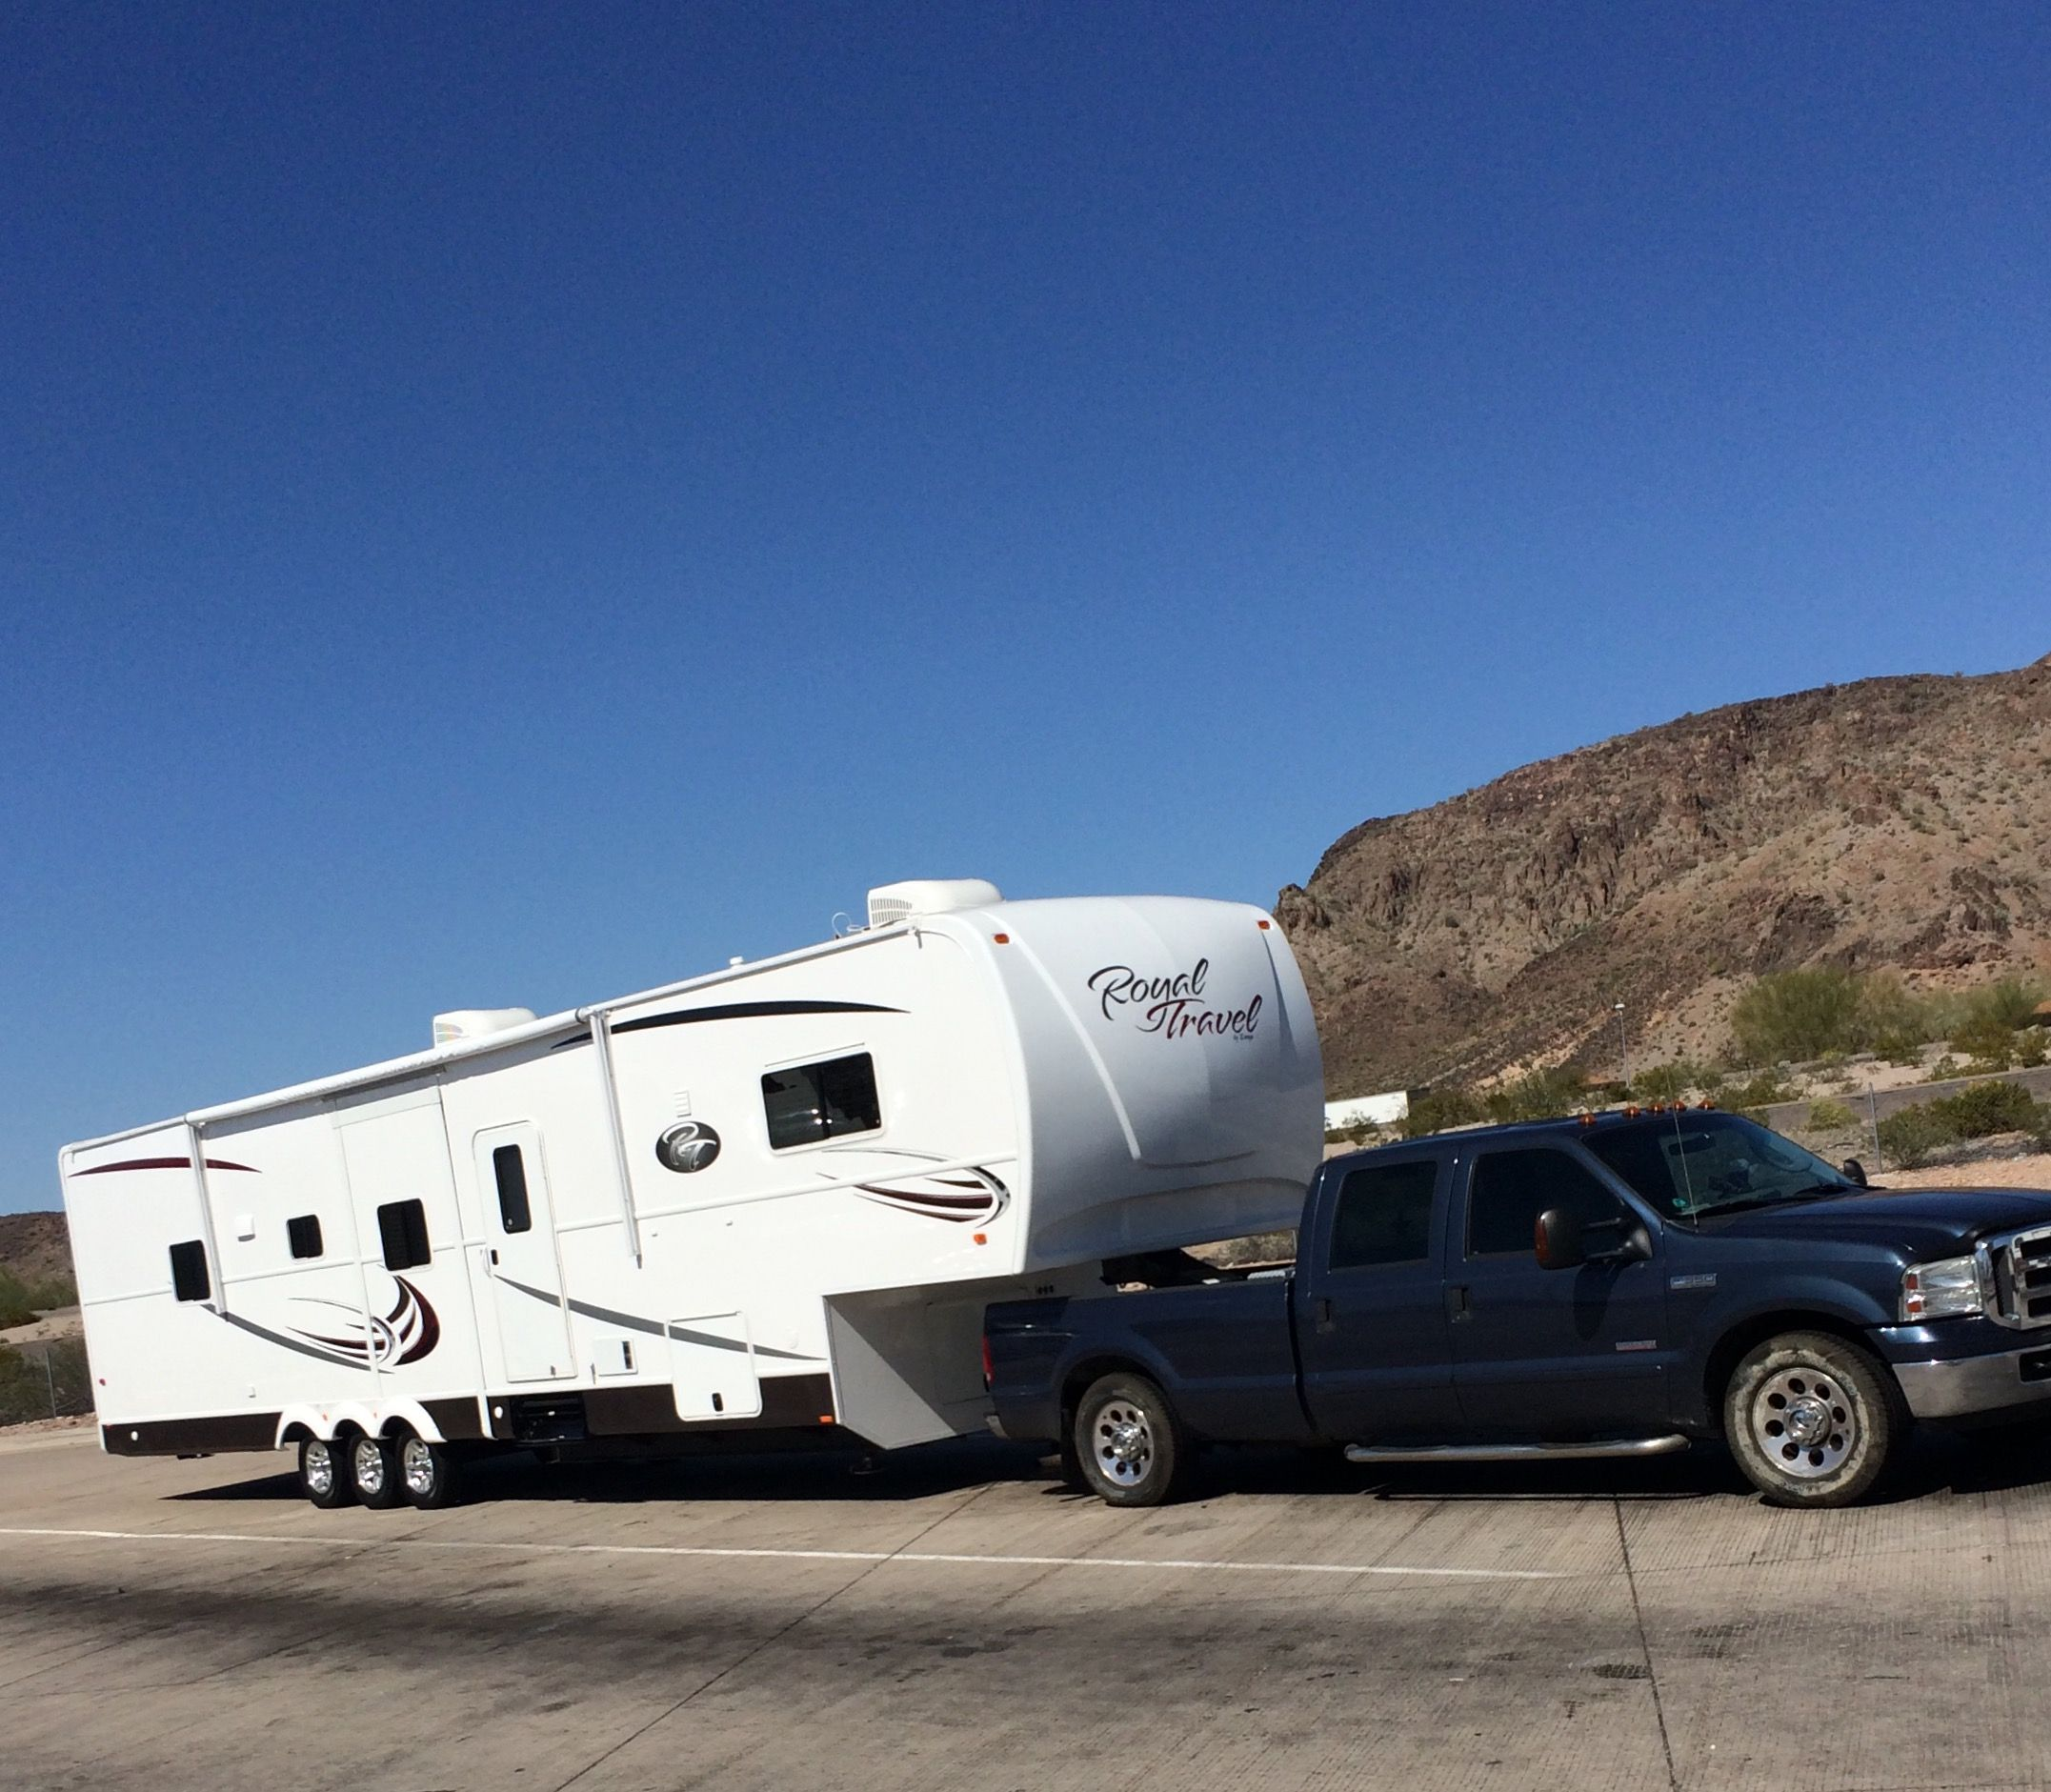 Pin By Lynn Ebersbacher On Rv's & Trailers, Transported